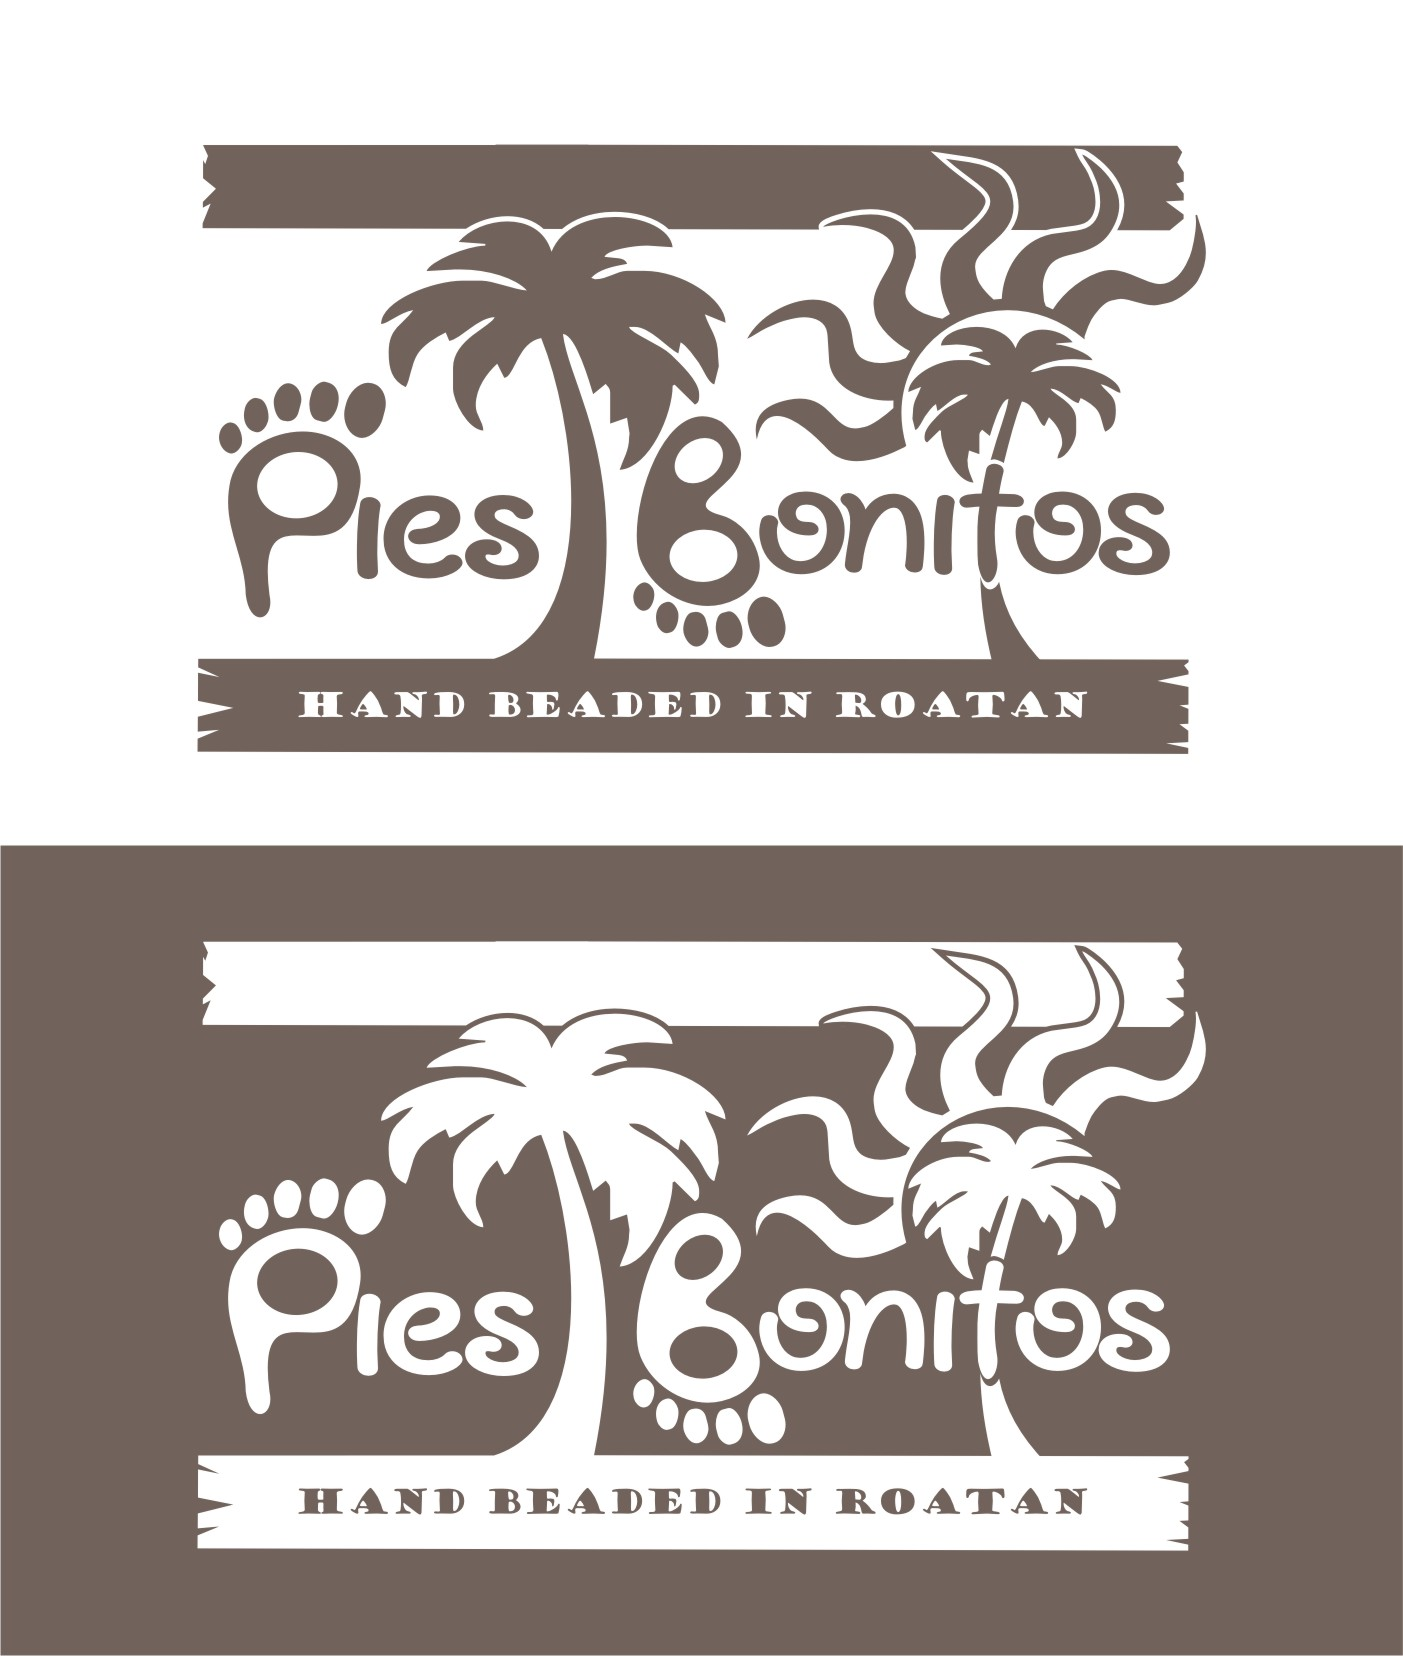 Logo Design by Private User - Entry No. 79 in the Logo Design Contest Unique Logo Design Wanted for Pies Bonitos.